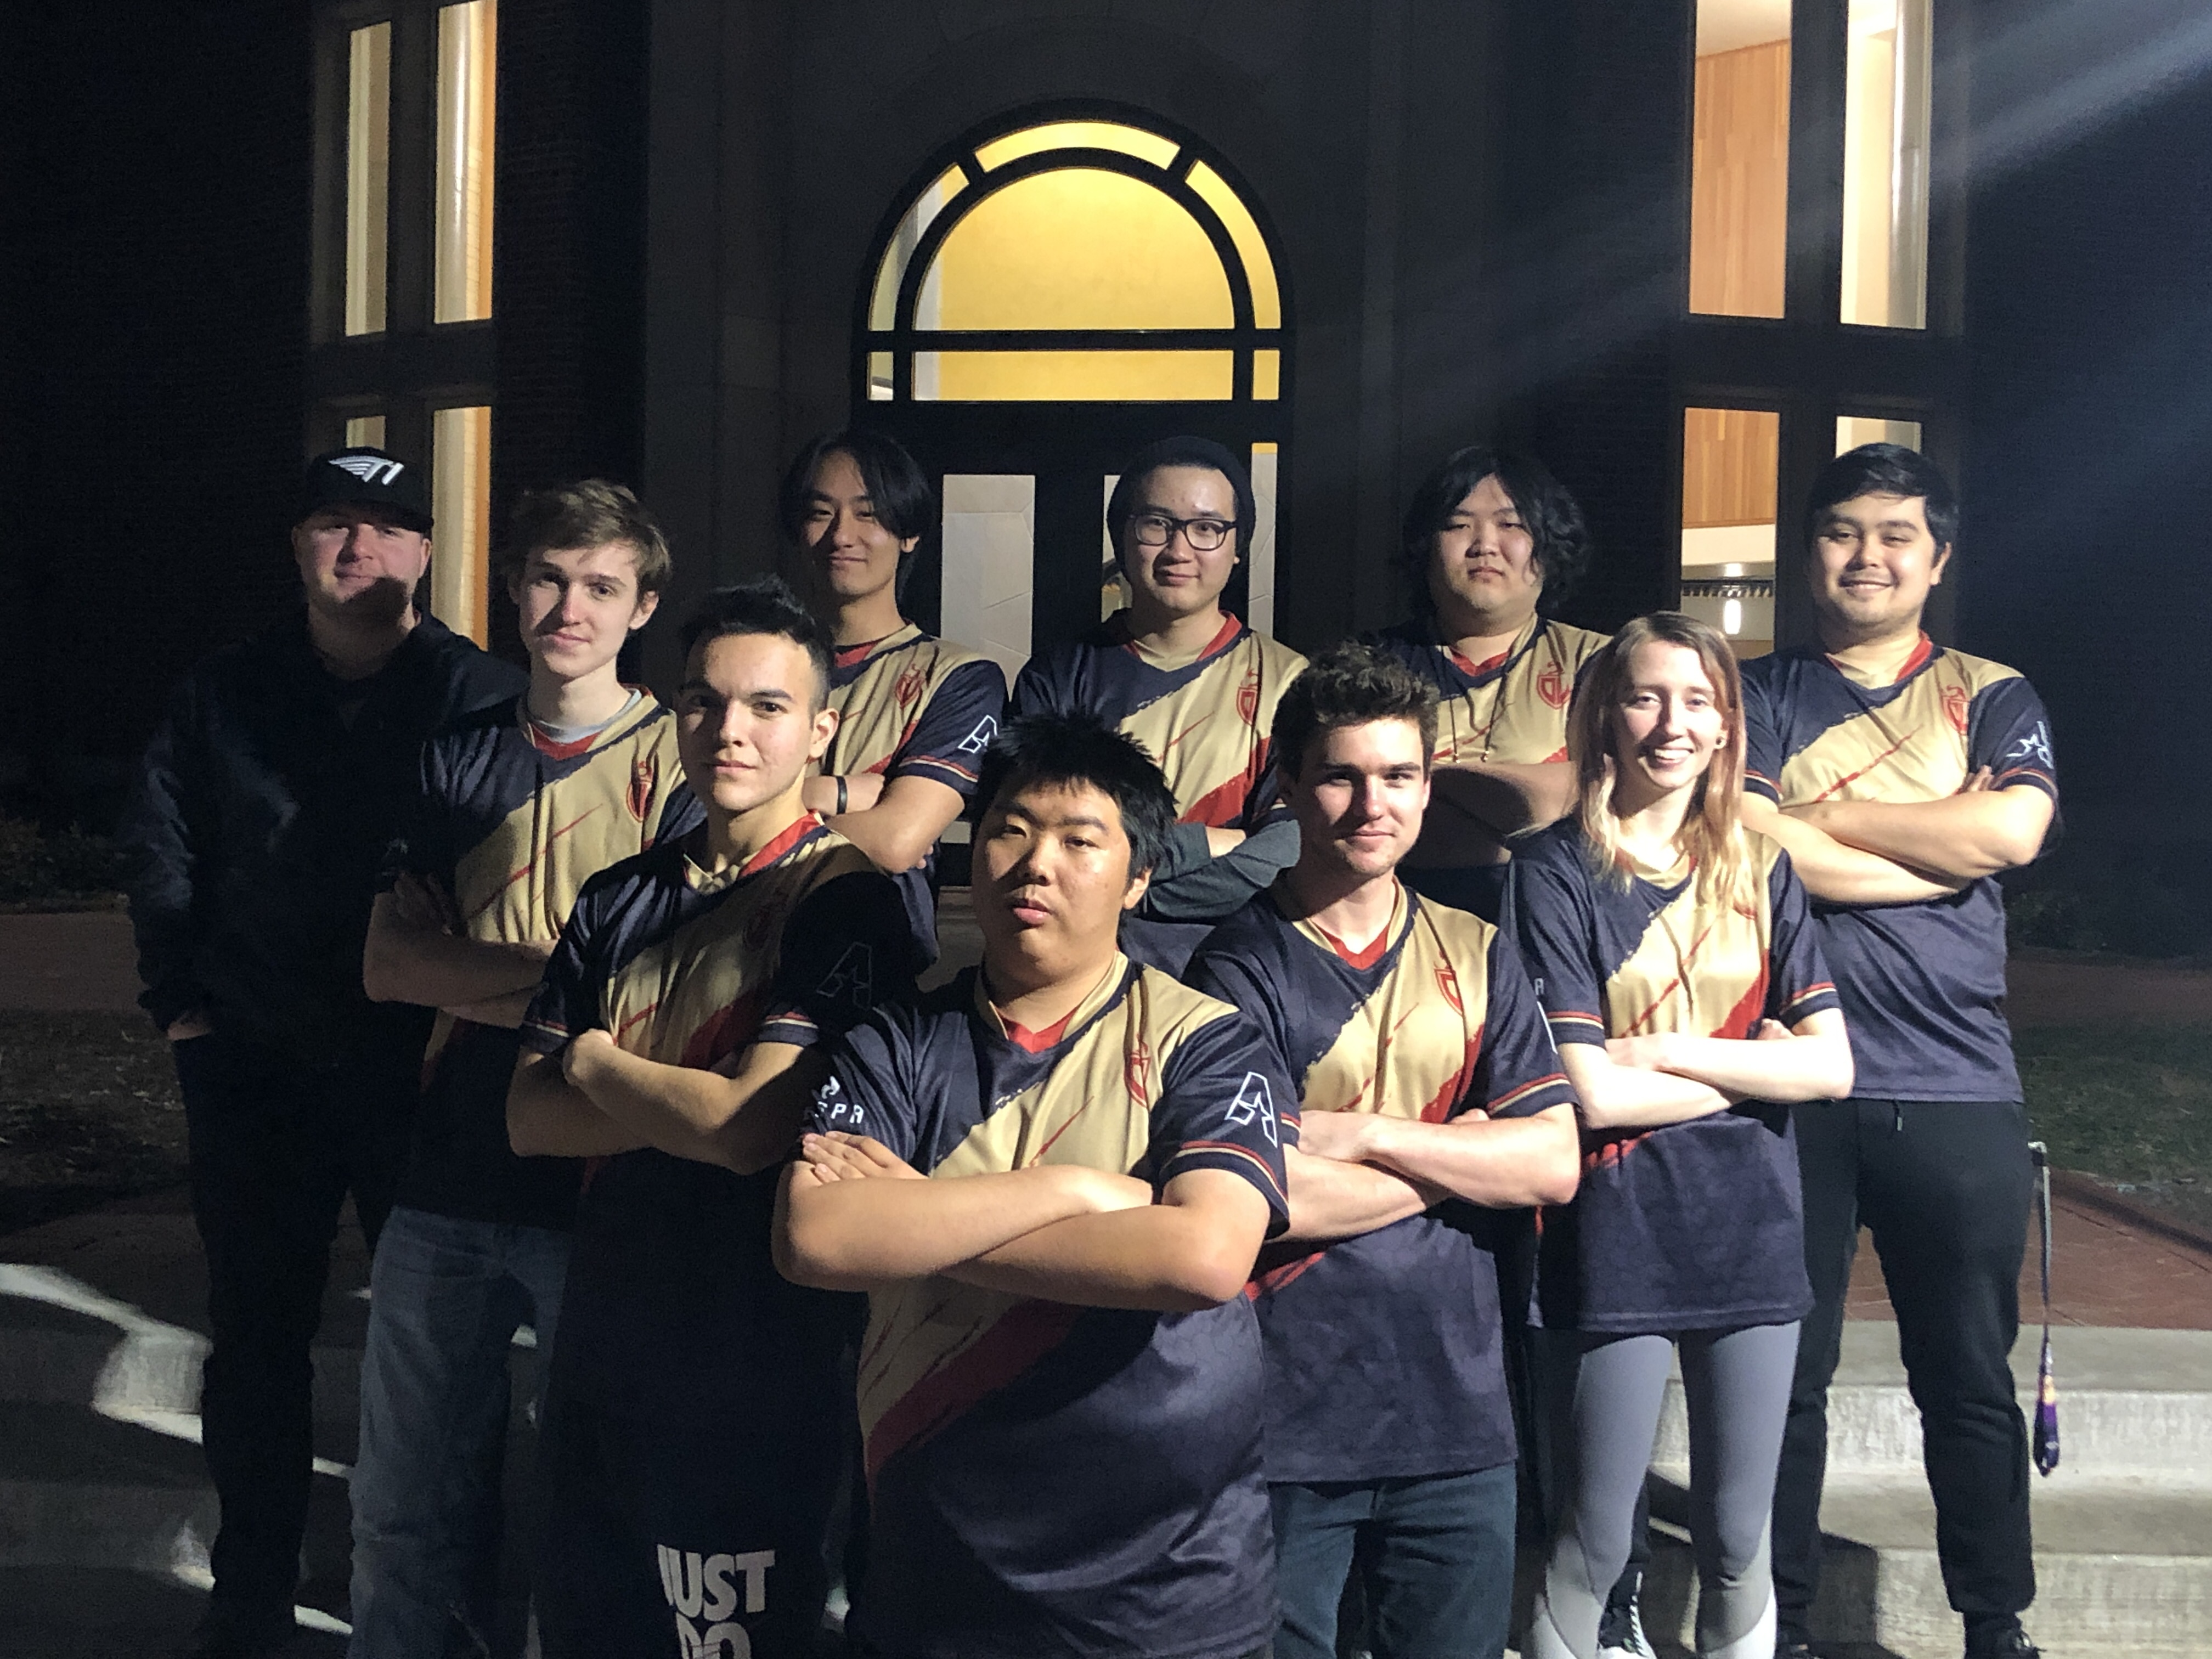 League of Legends team photo